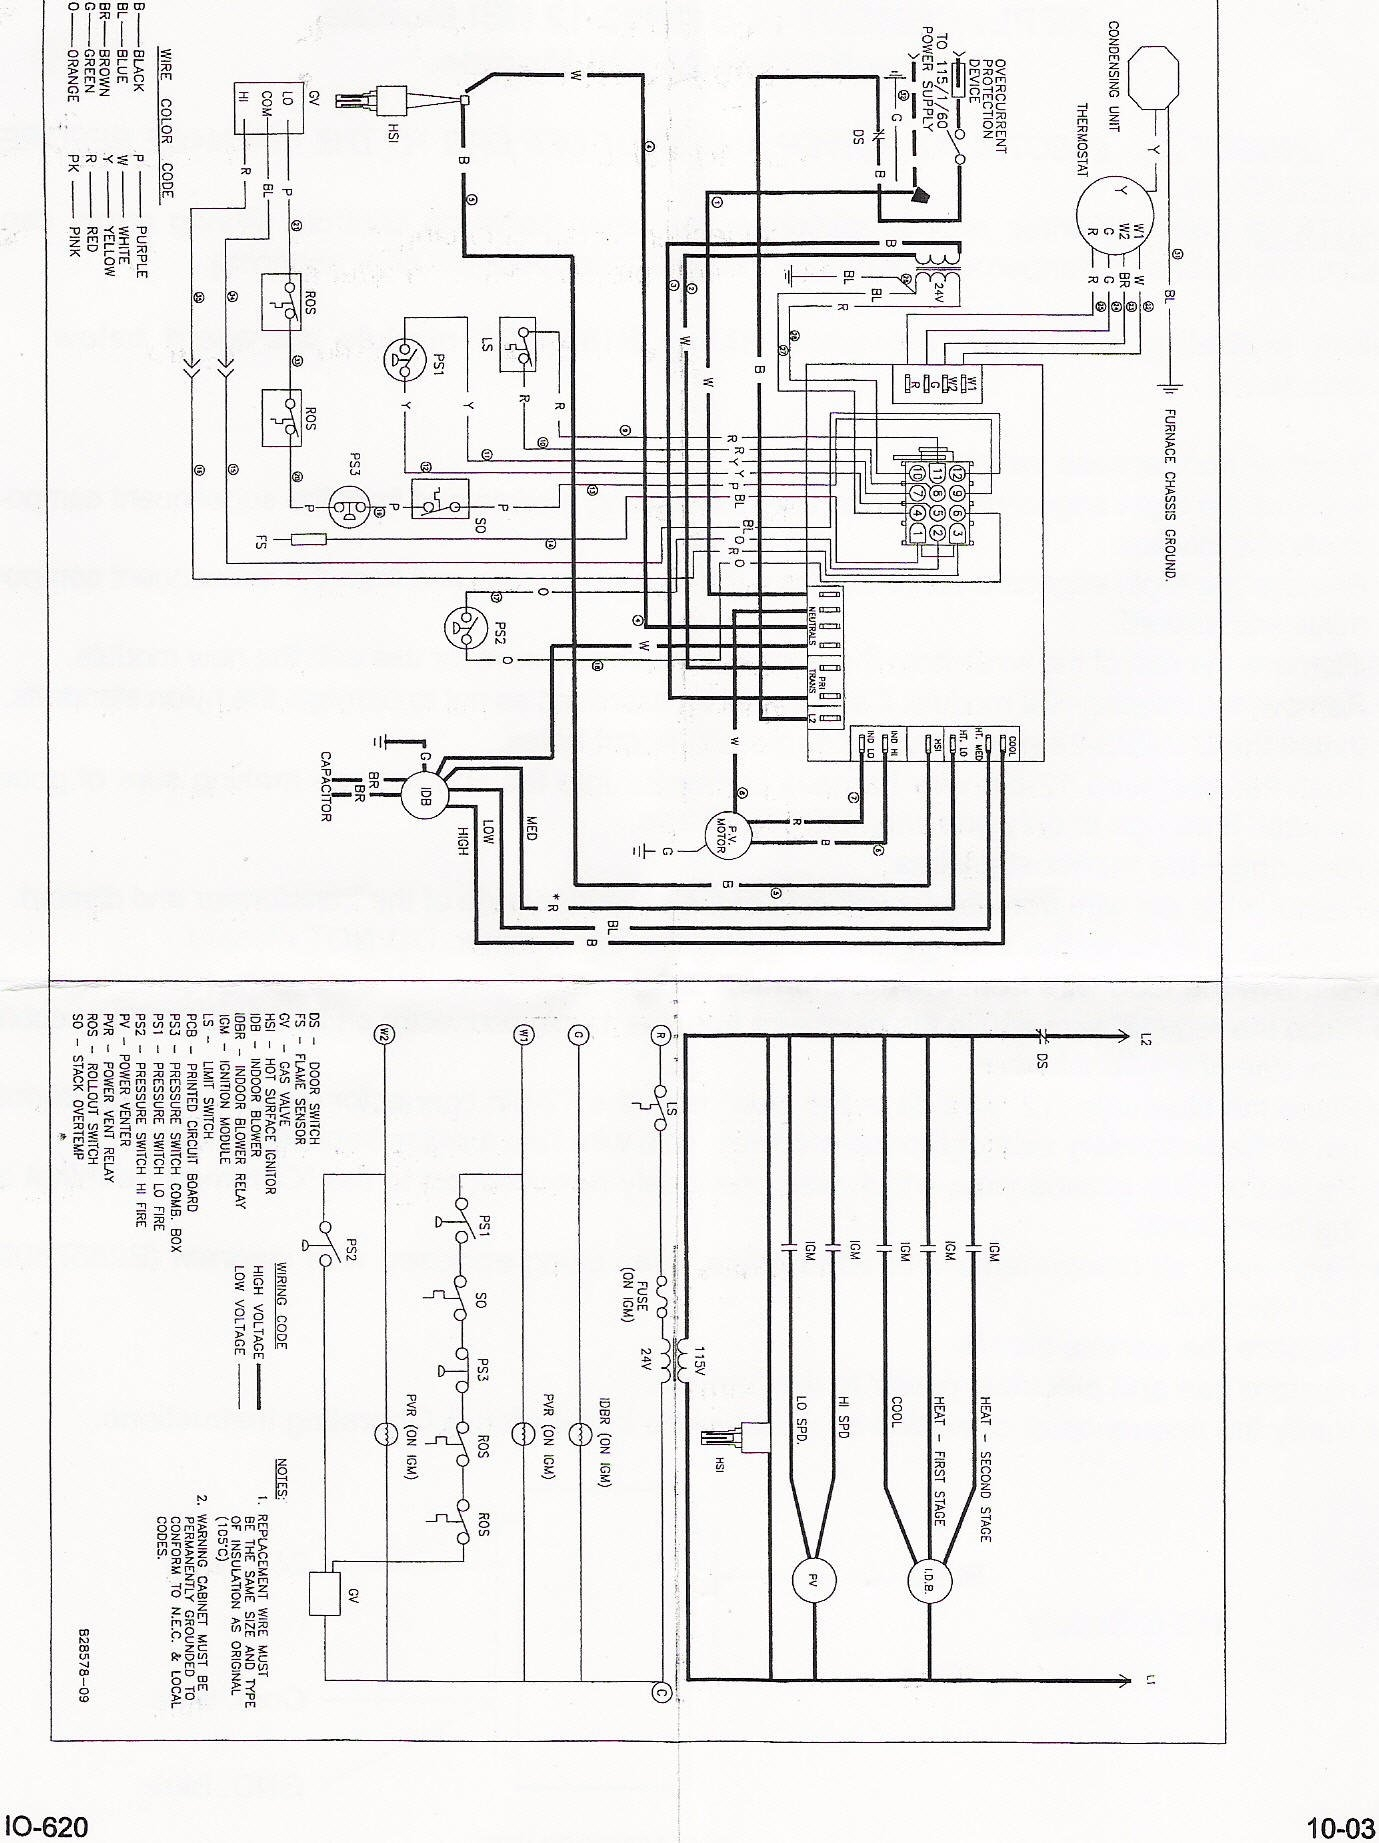 wiring harness layout board